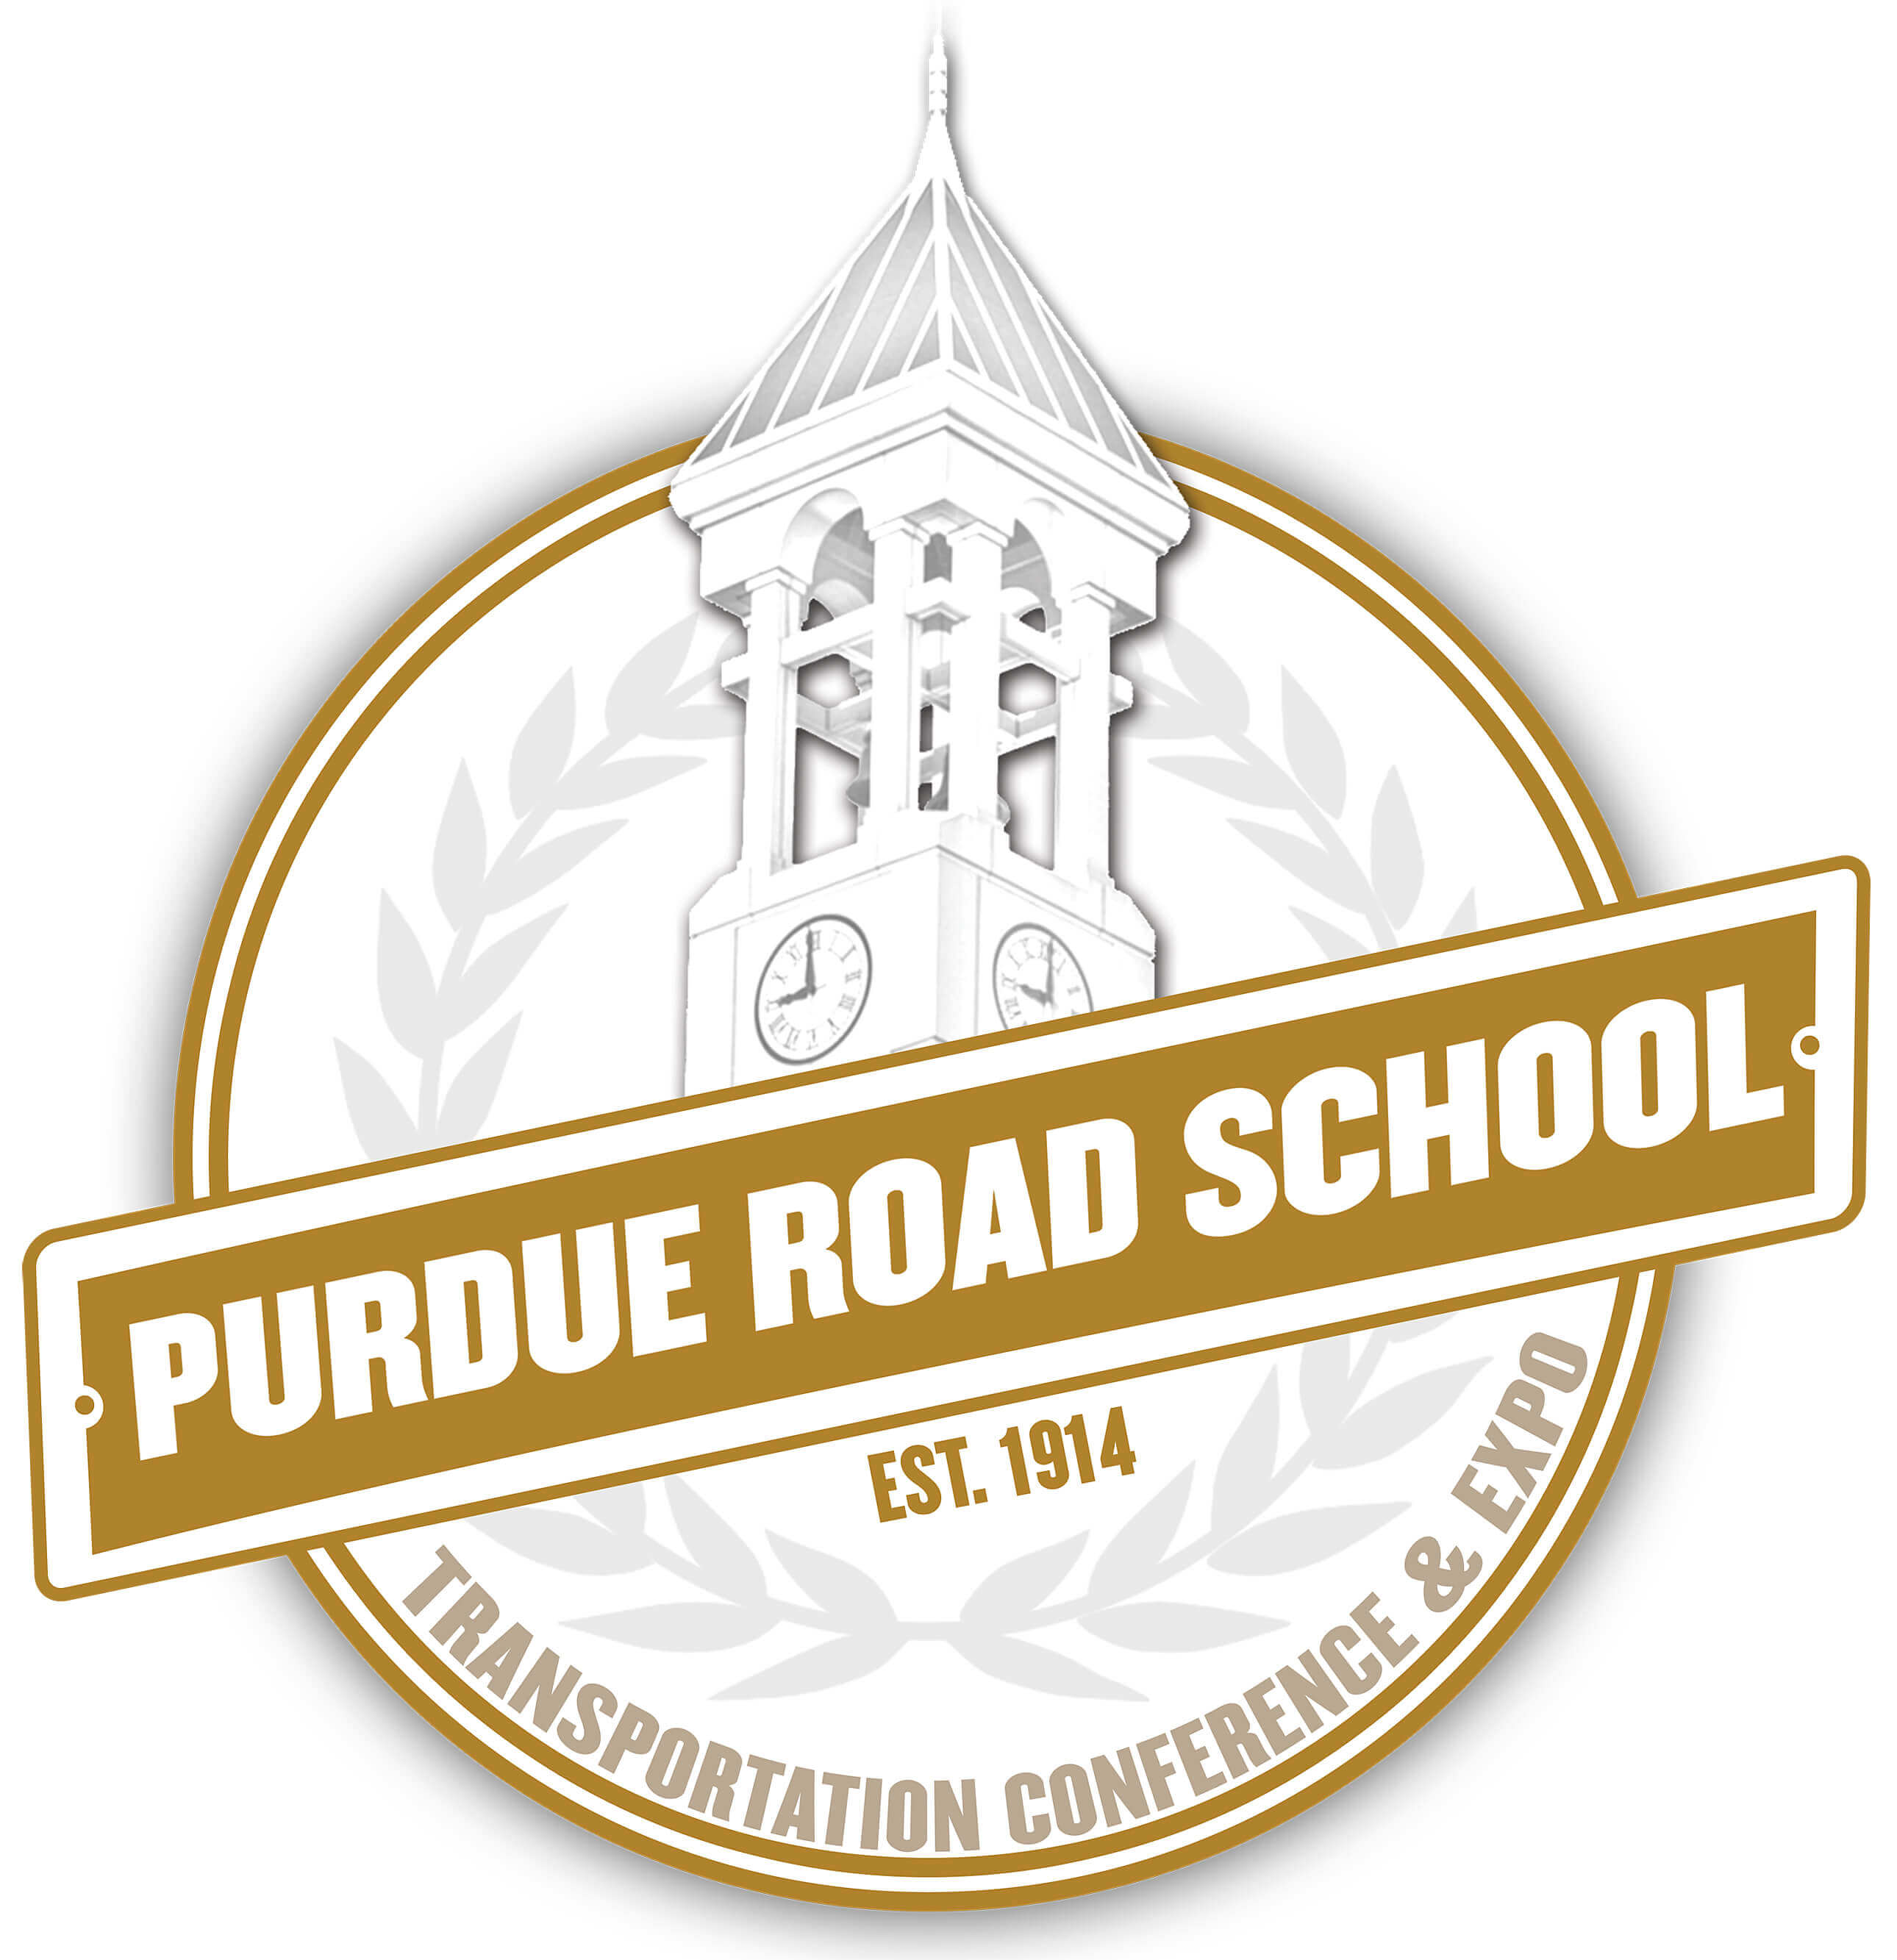 Purdue Road School image